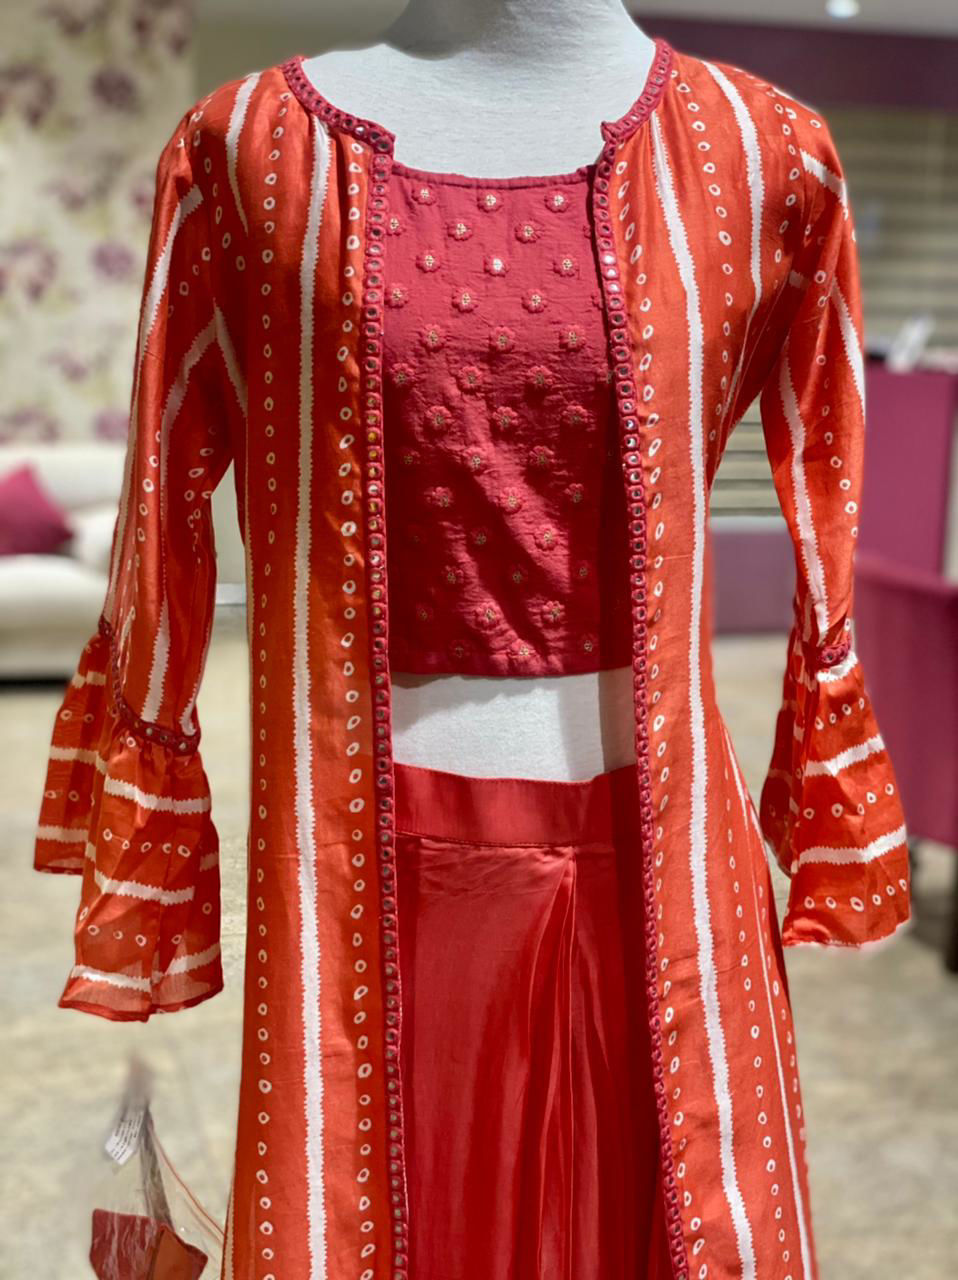 Picture of Mirror Work Crop Top With Crepe Cowl Skirt  And Jacket In Bandhej Print With Flared Sleeves Down